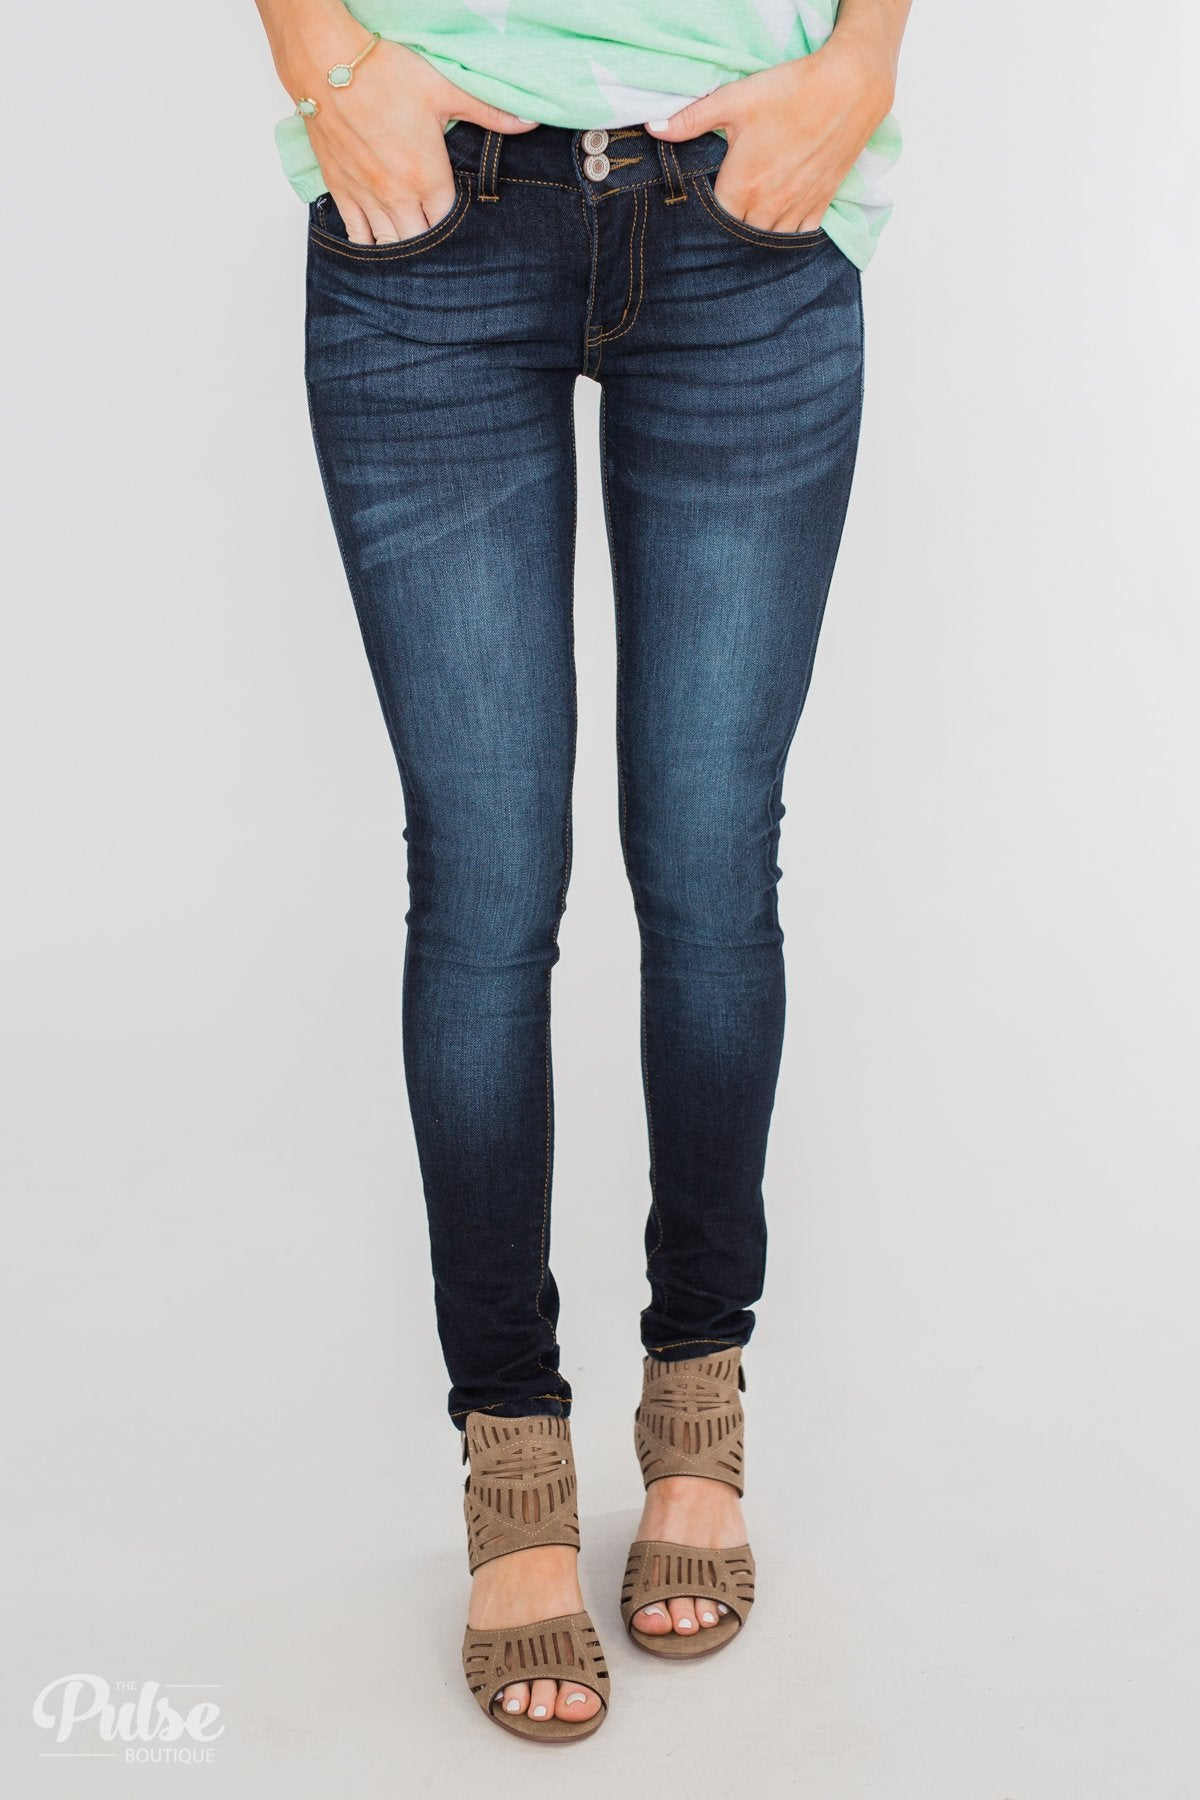 KanCan Non-Distressed Jeans- Alicia Wash